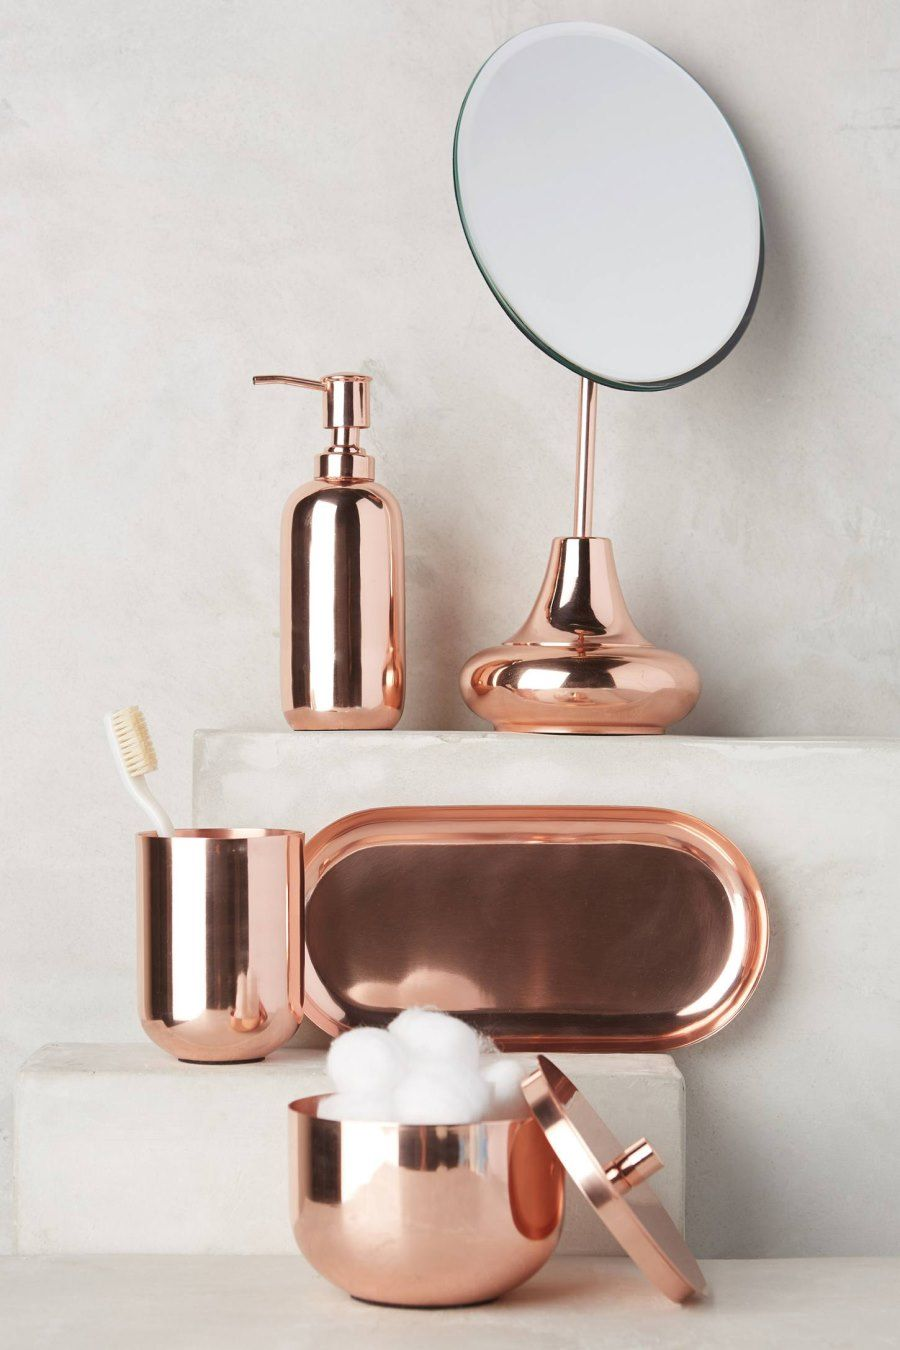 High End Bathroom Accessories With Modern Style Gold Bathroom